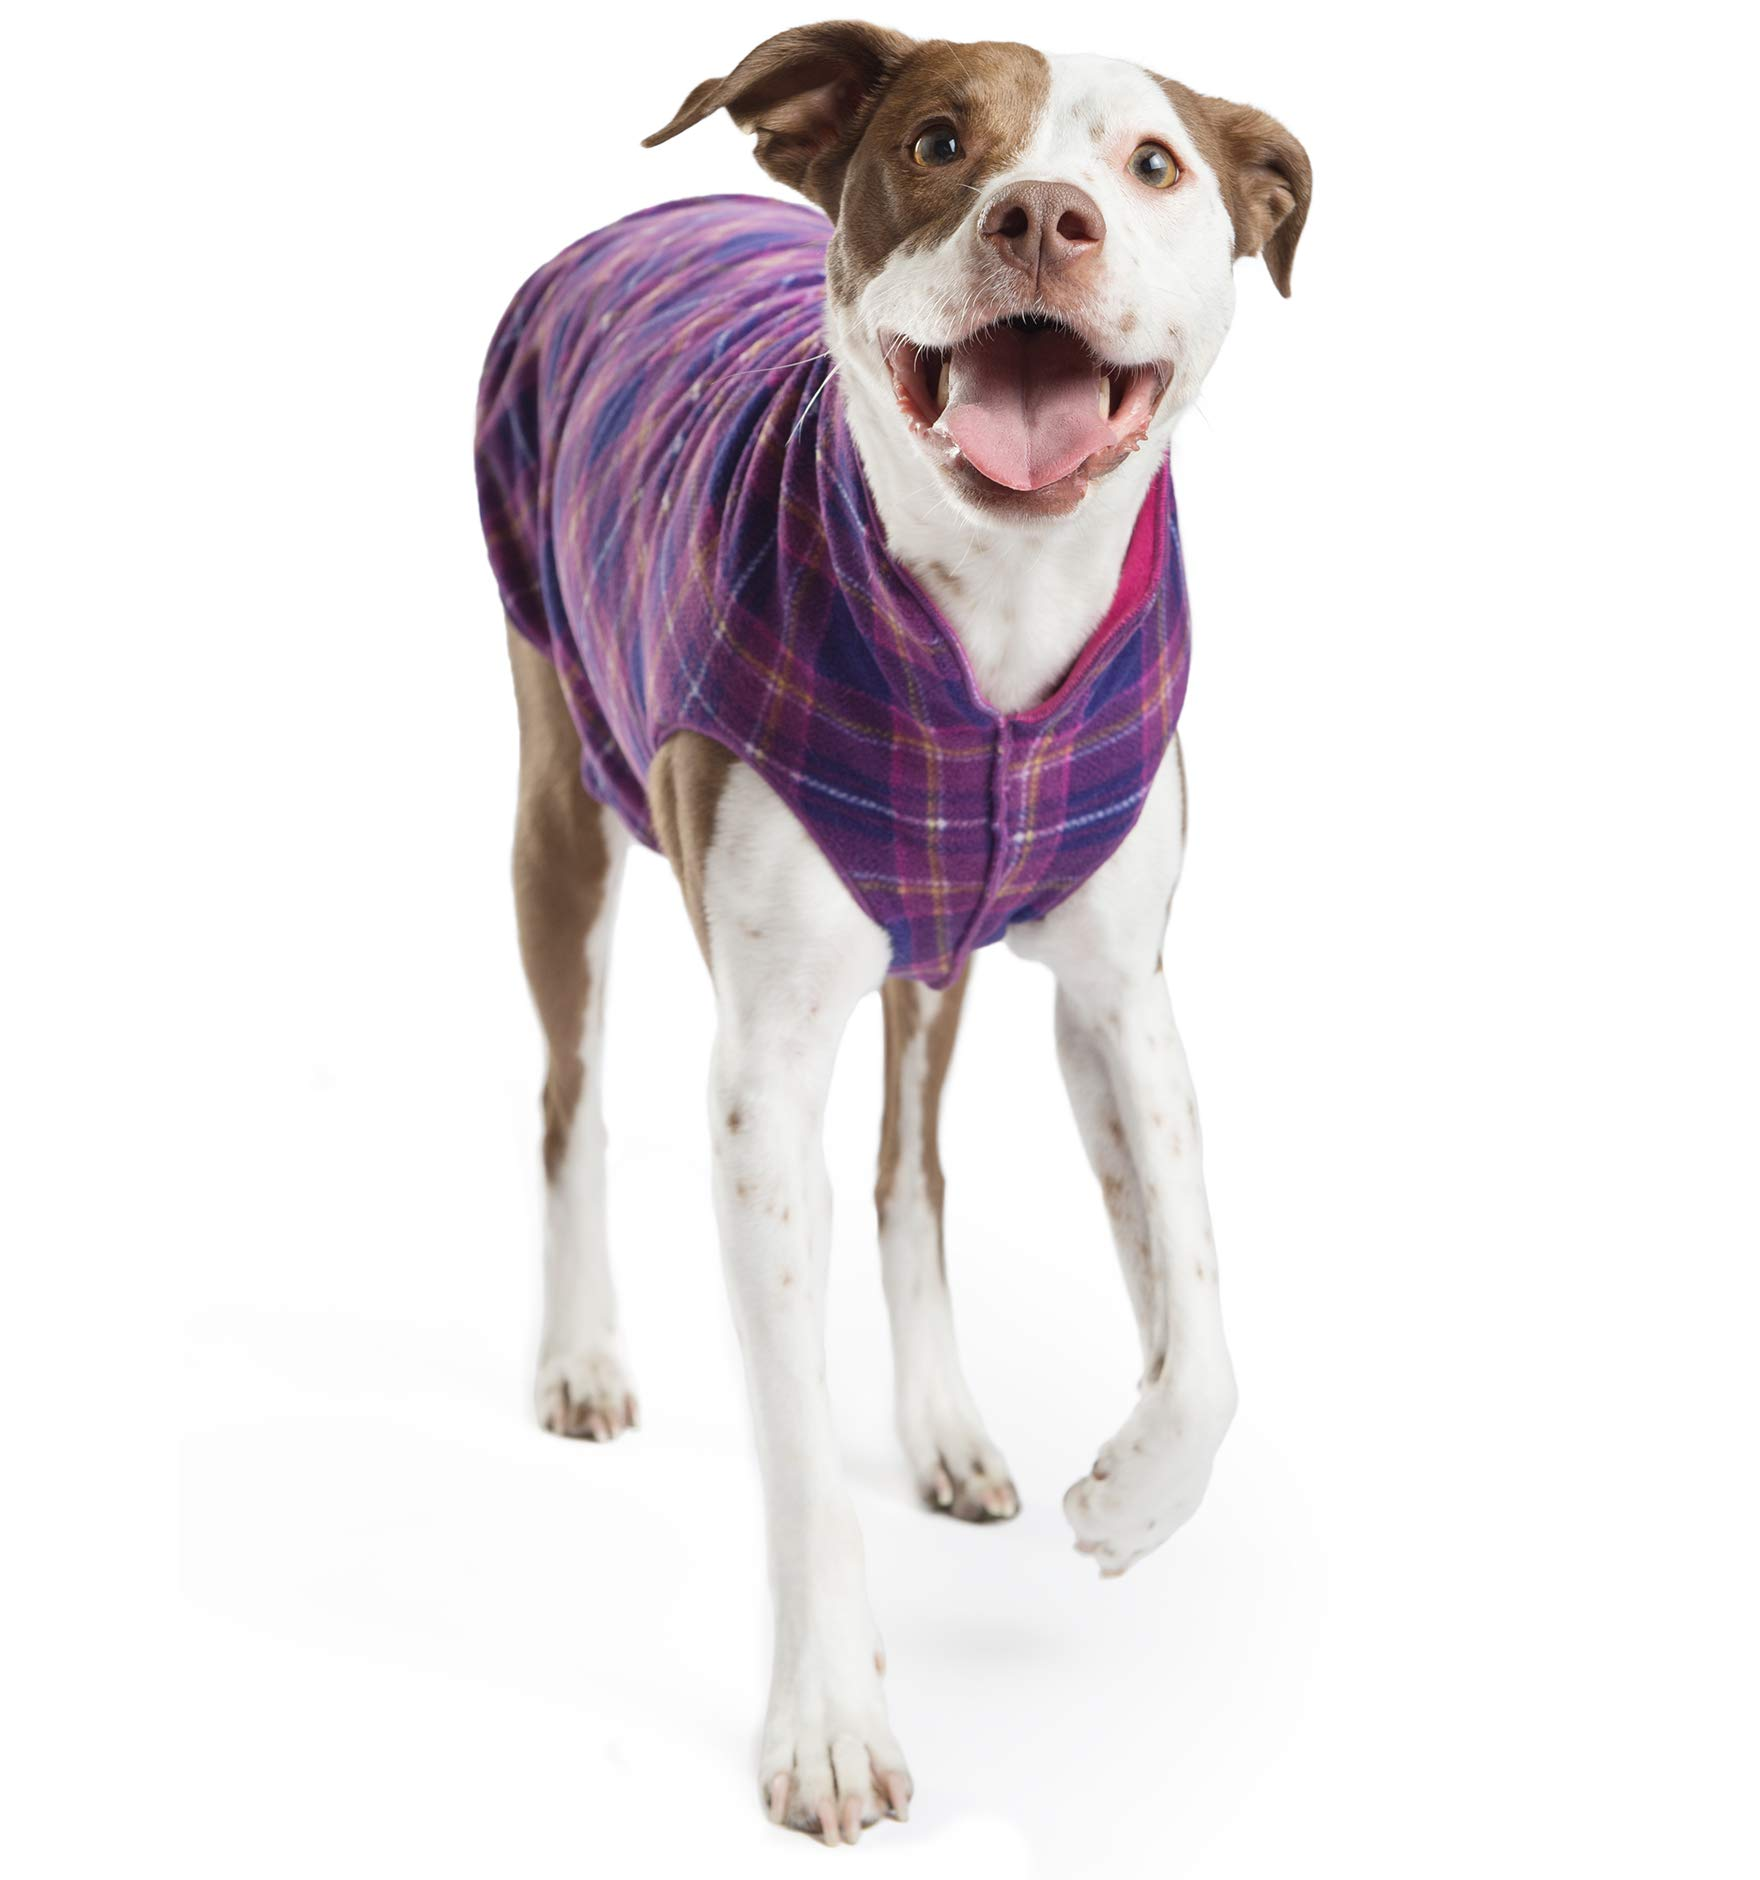 Gold Paw Duluth Double Fleece Dog Coat Pullover - Soft, Warm Dog Clothes, 4-Way Stretch Pet Sweater - Machine Washable, All-Season, Mulberry/Fuchsia, Size 6 by Gold Paw